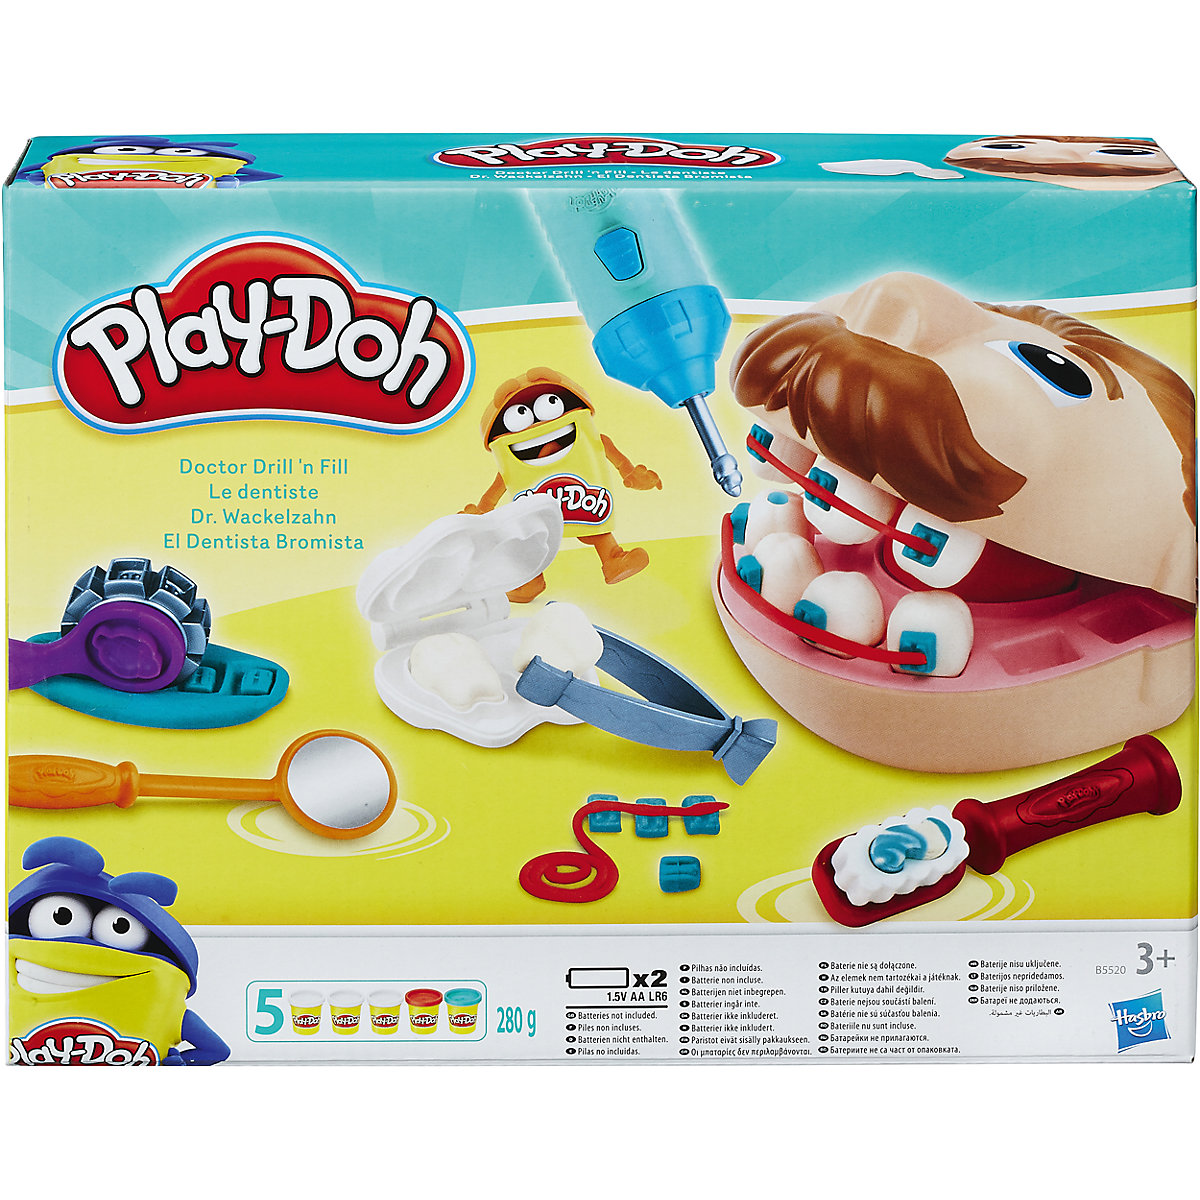 Modeling Clay Slime HASBRO 4678449 Children creative set Toy Toys Game Games Kids Baby boys  Stationery Lizun Play-Doh MTpromo creative stationery box stationery kit stationery box for primary school children and children s children s kindergarten